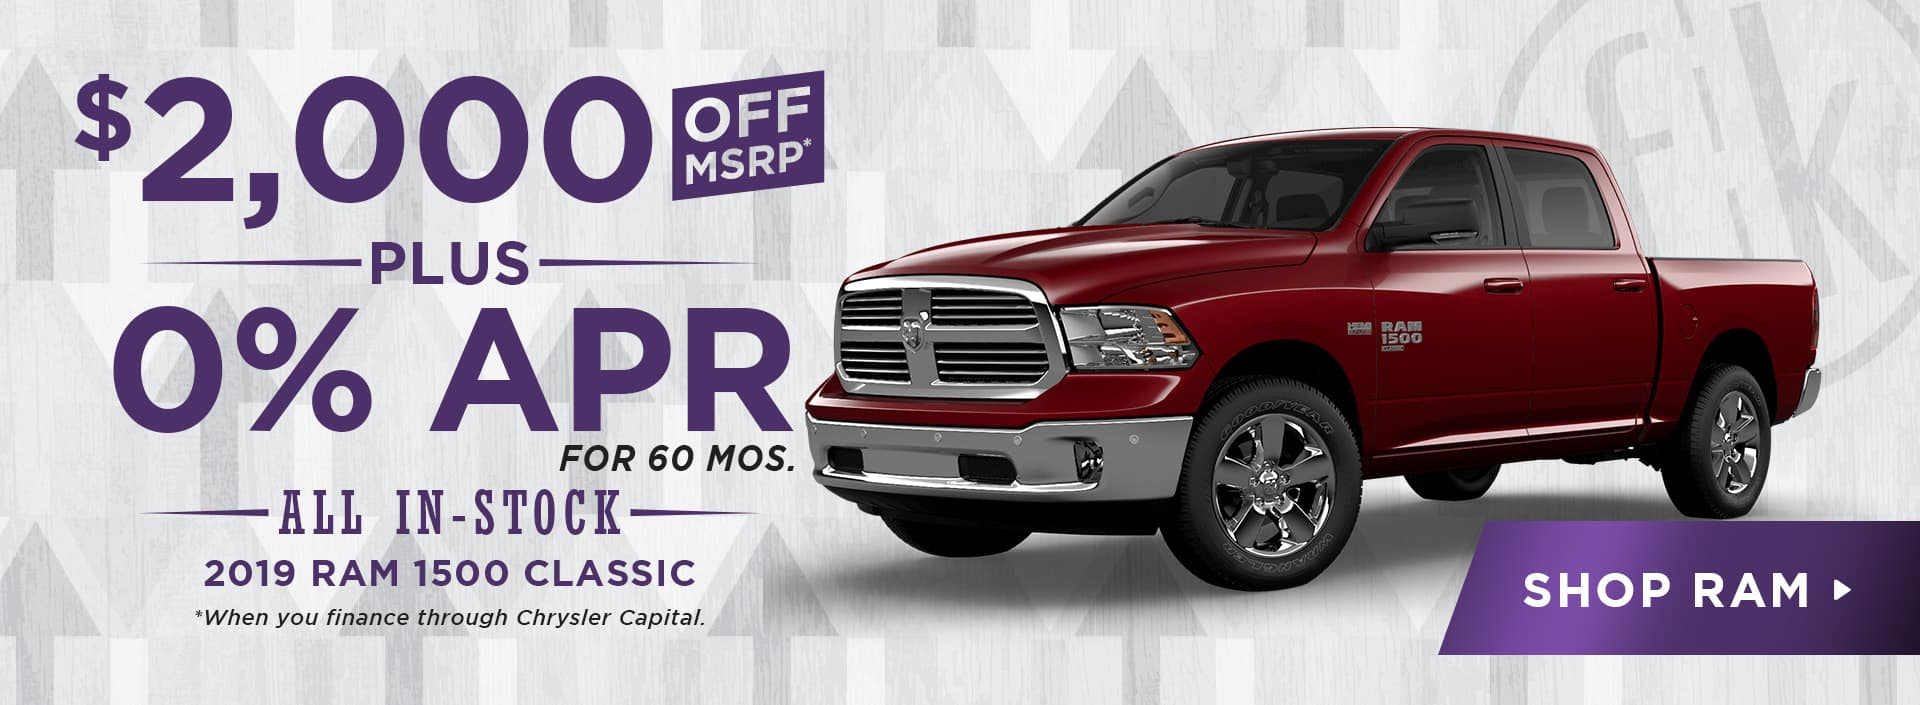 $2,000 Off PLUS 0% APR for 60 mos. All In-Stock 2019 RAM 1500 Classic